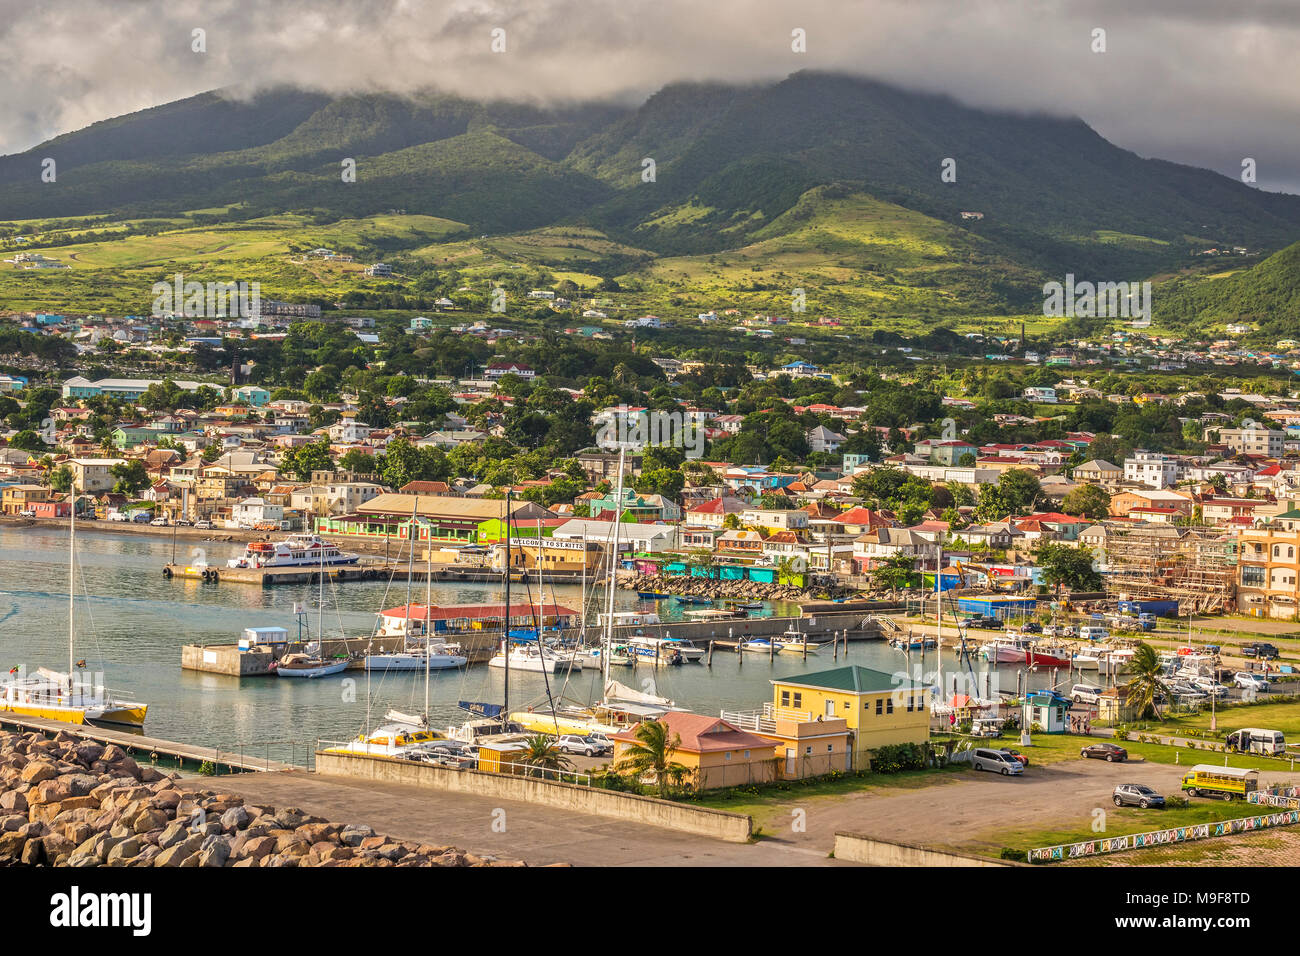 Boats In The Harbour, Basseterre,  St. Kitts, West Indies - Stock Image